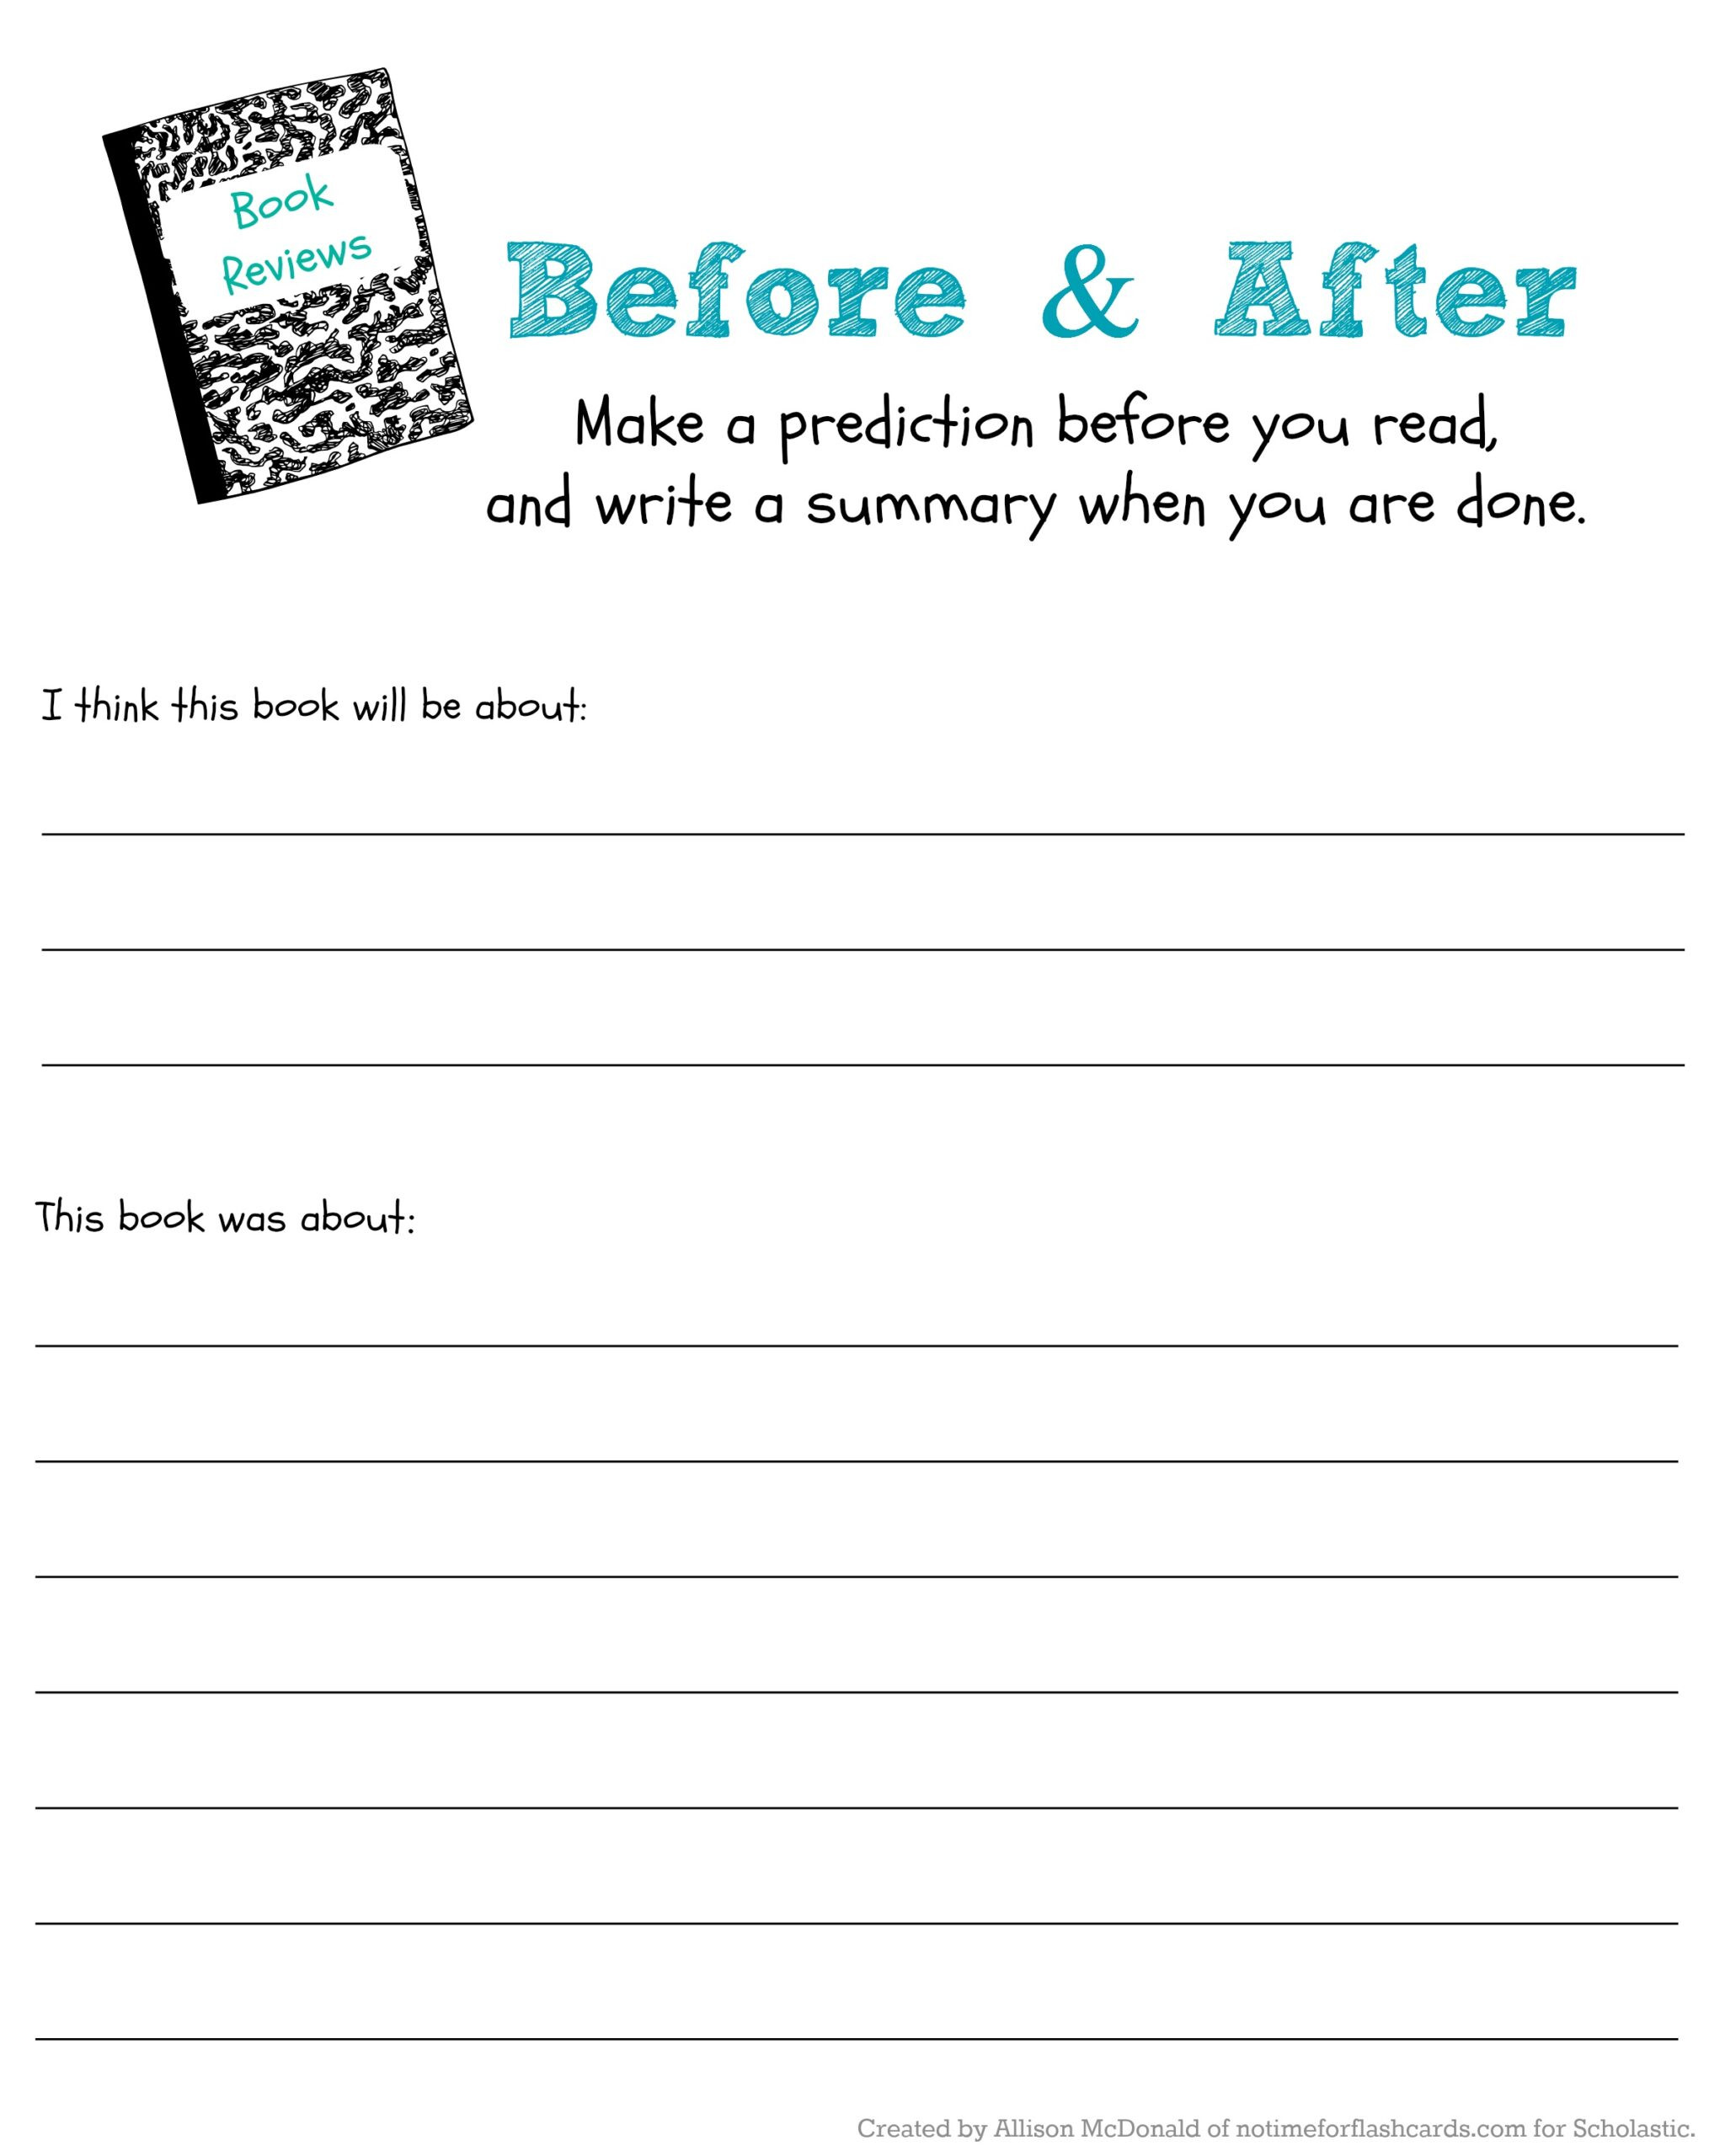 Predictions Worksheets 3rd Grade Judge Book by Its Cover to Predict Read Scholastic Parents